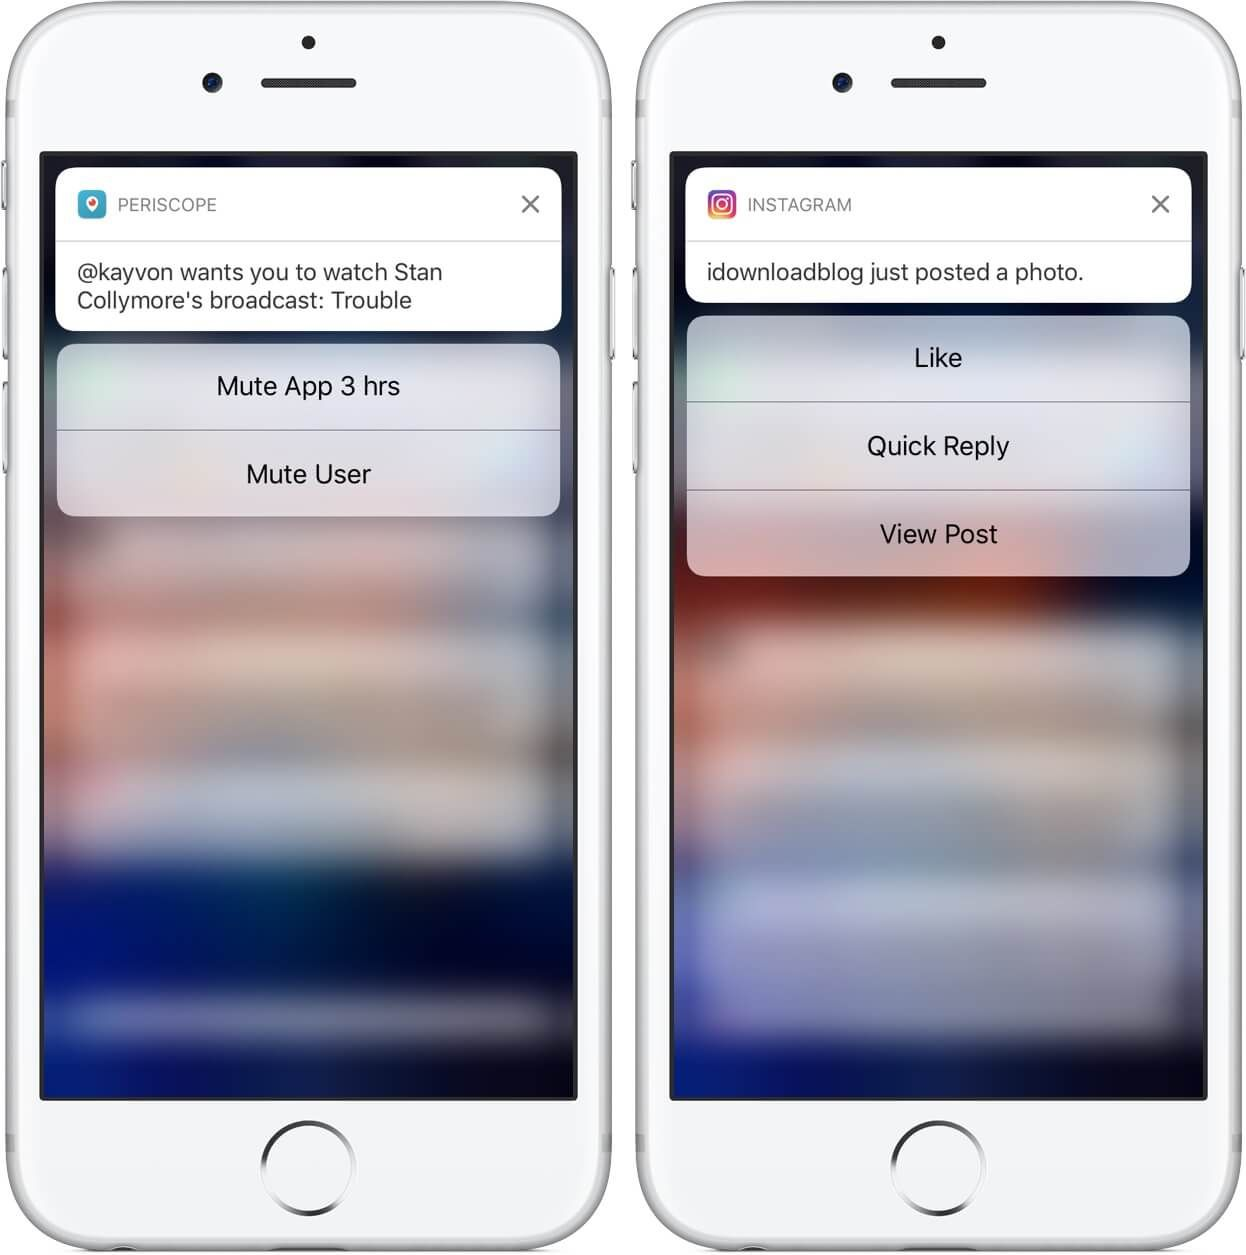 Make Interactive Ios 10 Notifications With User Notifications Framework Android Tutorials Ios 10 App Development